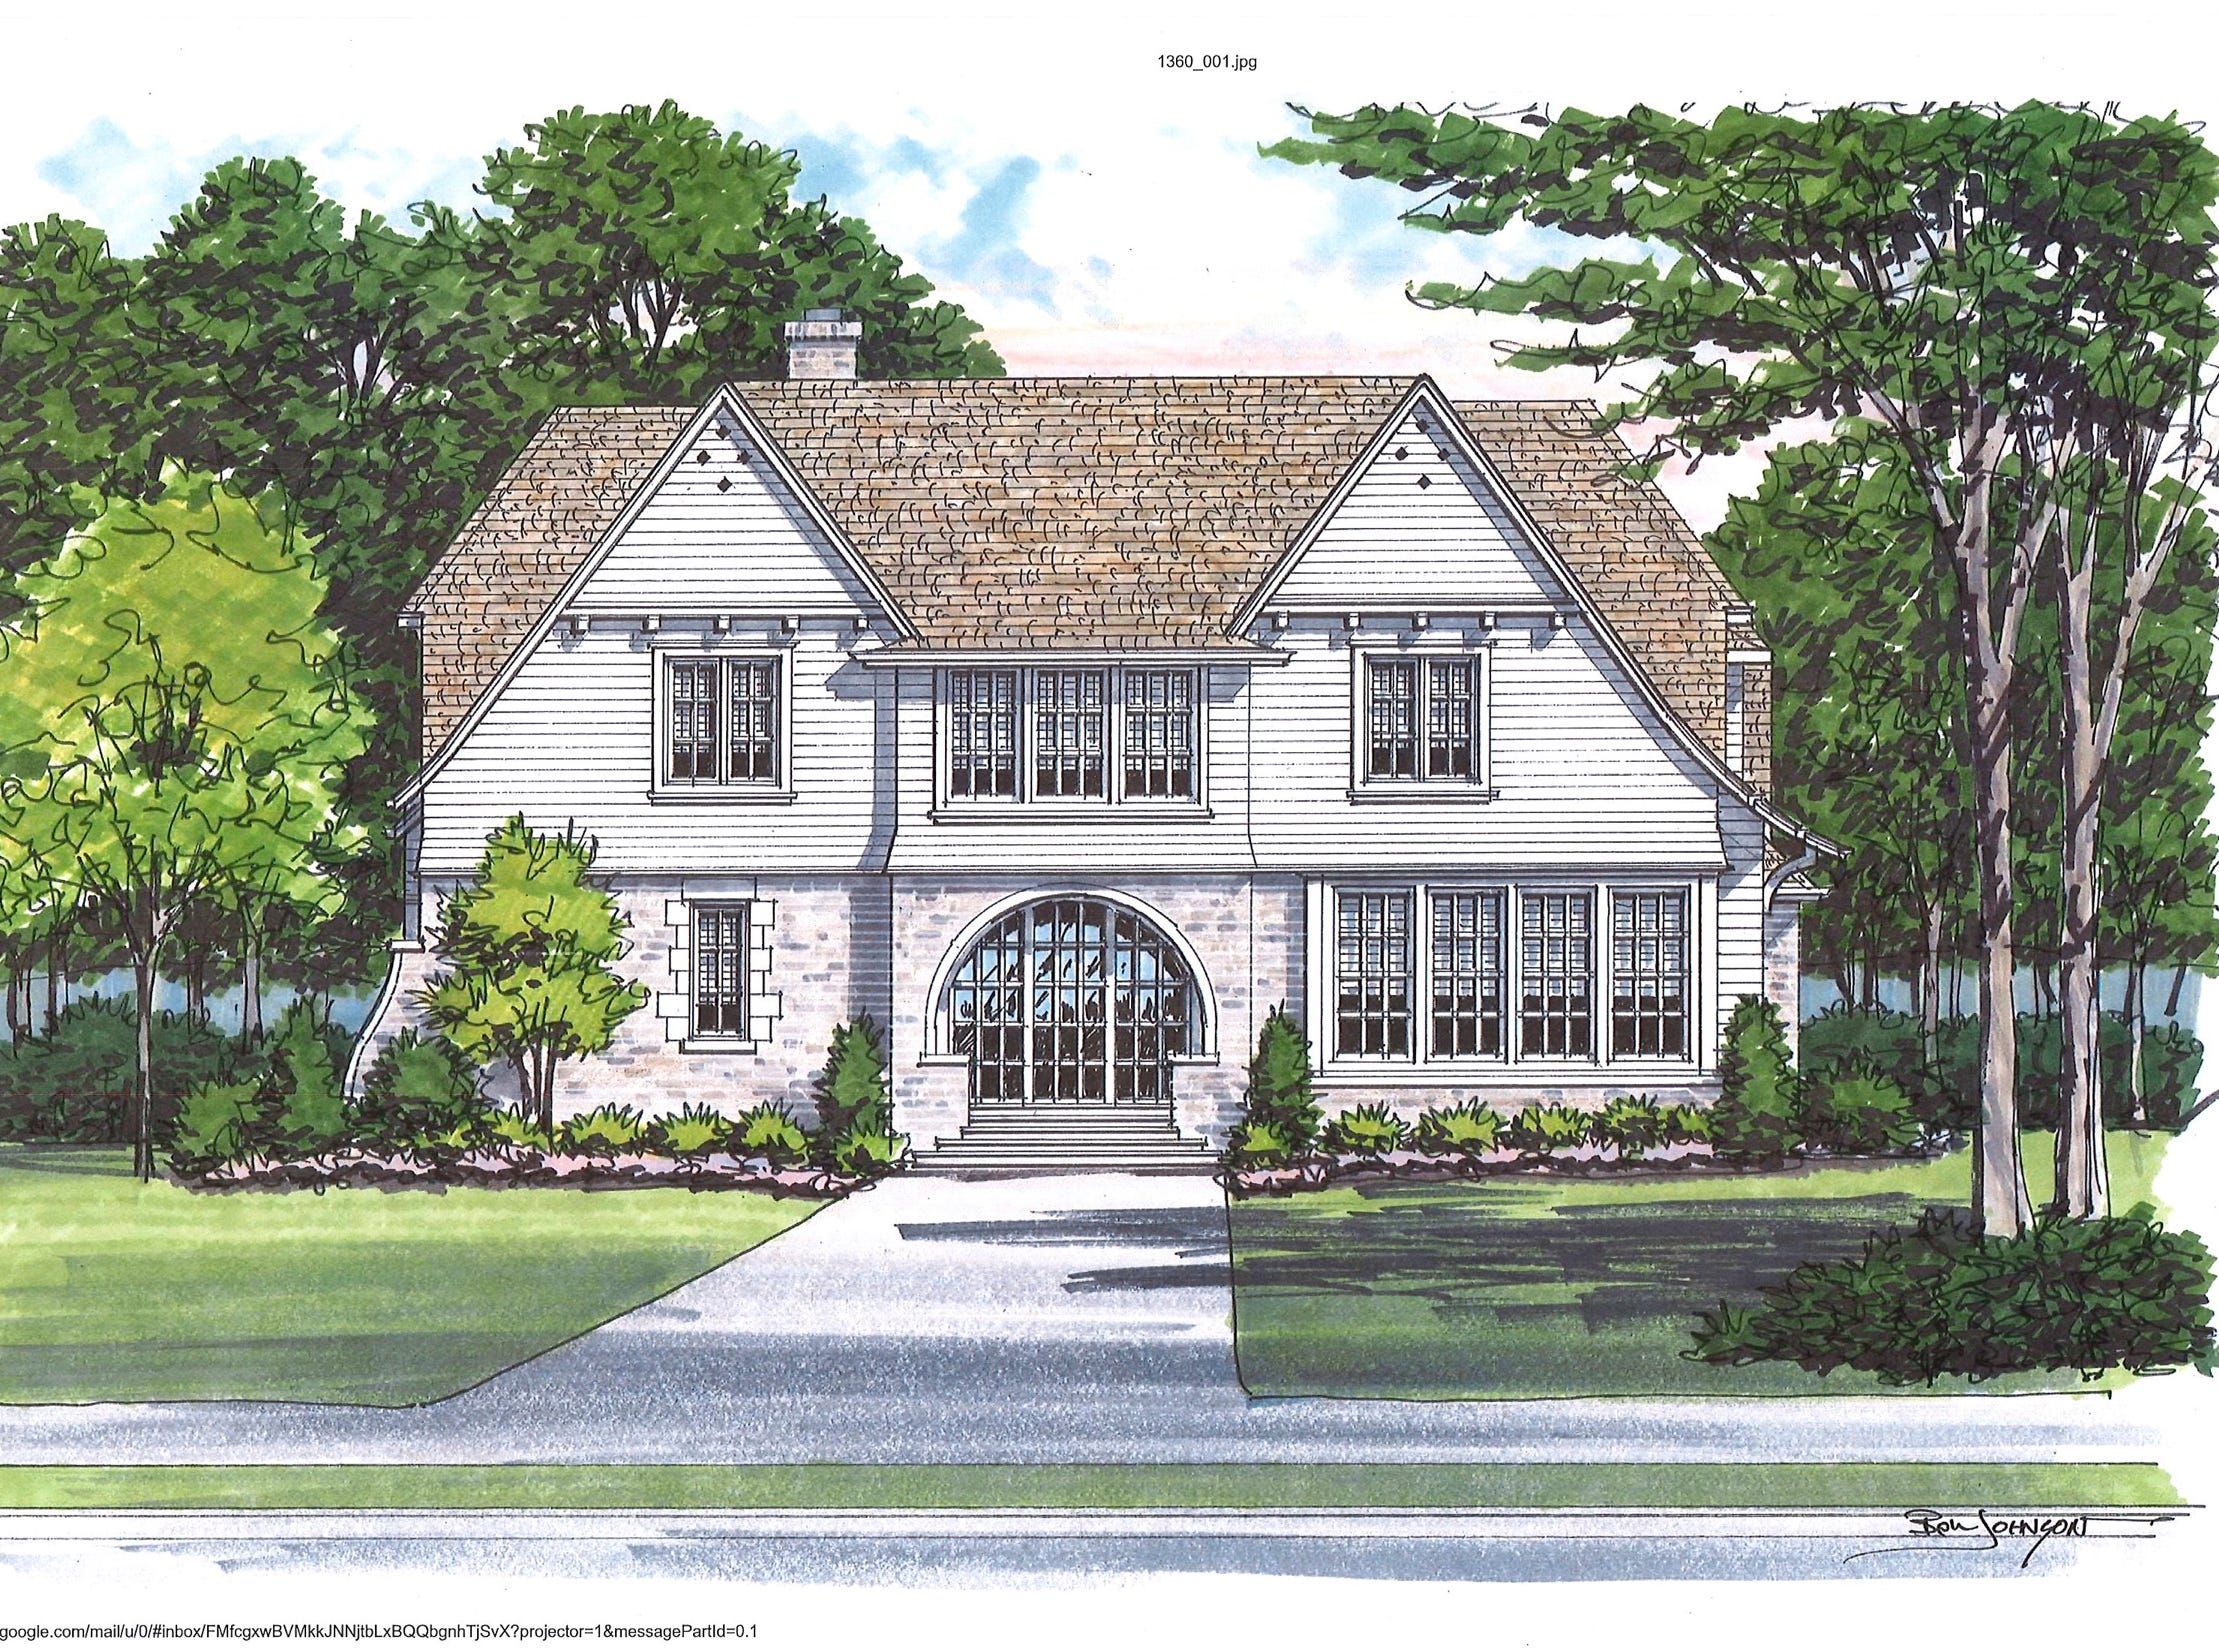 The almost 6,000 square foot home, will be in the English Arts and Crafts style and sit on a pretty ¾ acre home site and is being built in the Belle Meade area of Nashville. This will be a design-build project for Castle Homes who collaborated with architect Kevin Coffey, C. Kevin Coffey Dwellings and Design. The team was inspired by early 20th century architect C. F. A. Voysey, who embraced the simplicity of the Arts and Crafts movement.  The home will be open for tour in October and featured in House Beautiful magazine in November.